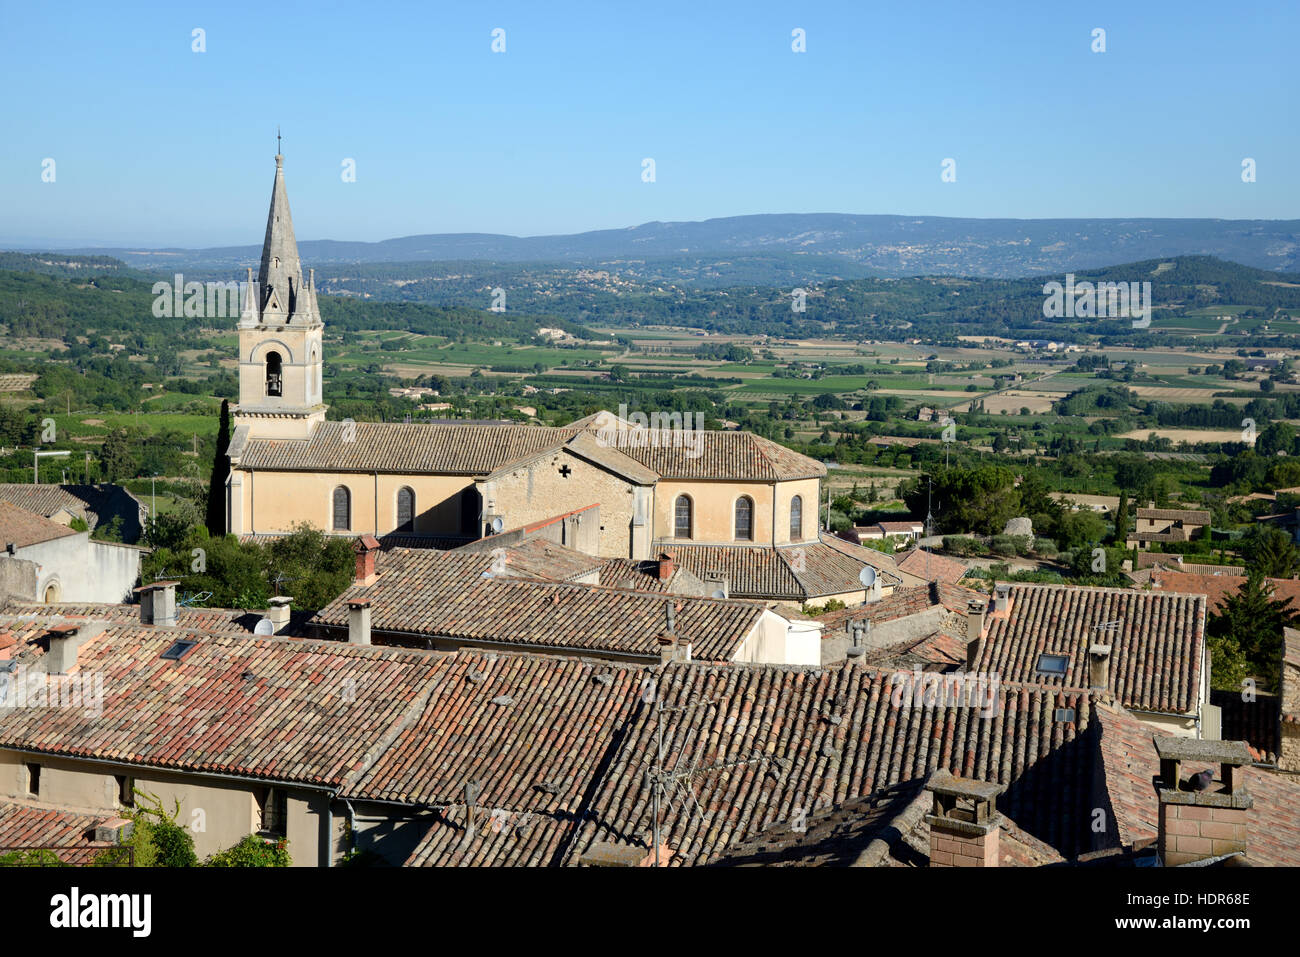 Panoramic View over the Village of Bonnieux, the New Church and the Main Plain of the Luberon Regional Park Provence - Stock Image